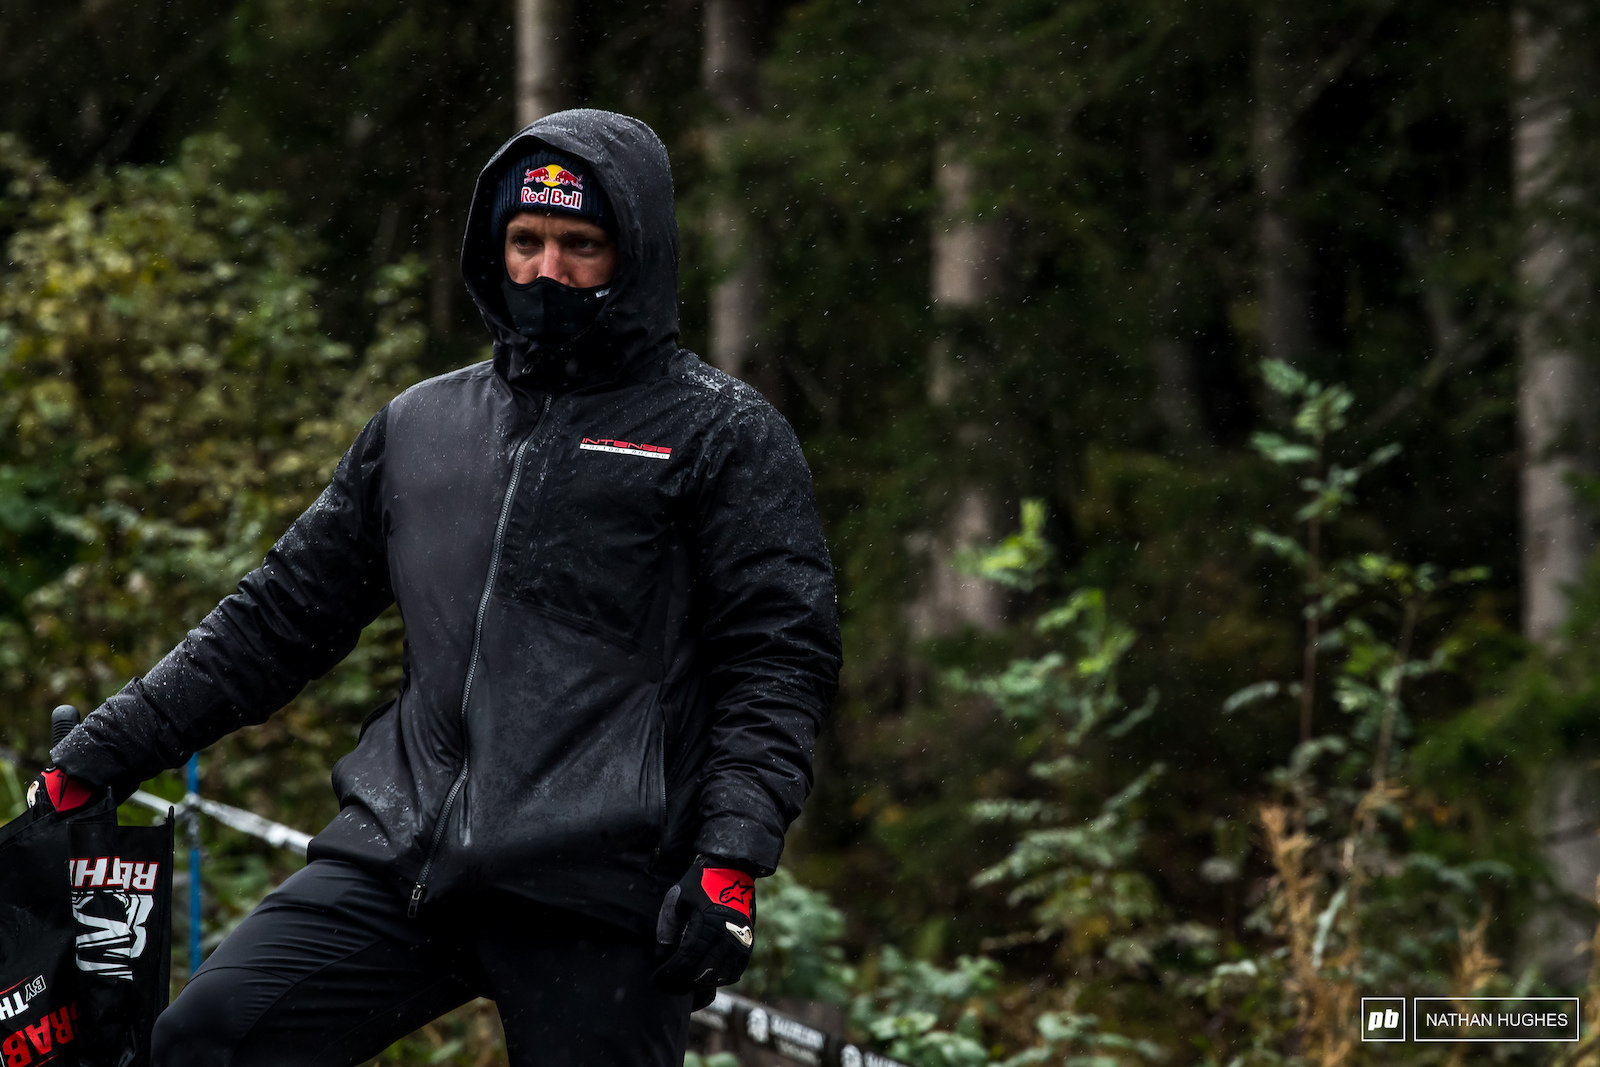 Aaron Gwin knows Leogang and how to win it come what may... But does he know this kind of Leogang The extreme weather is a curveball and the new section well you ll see.